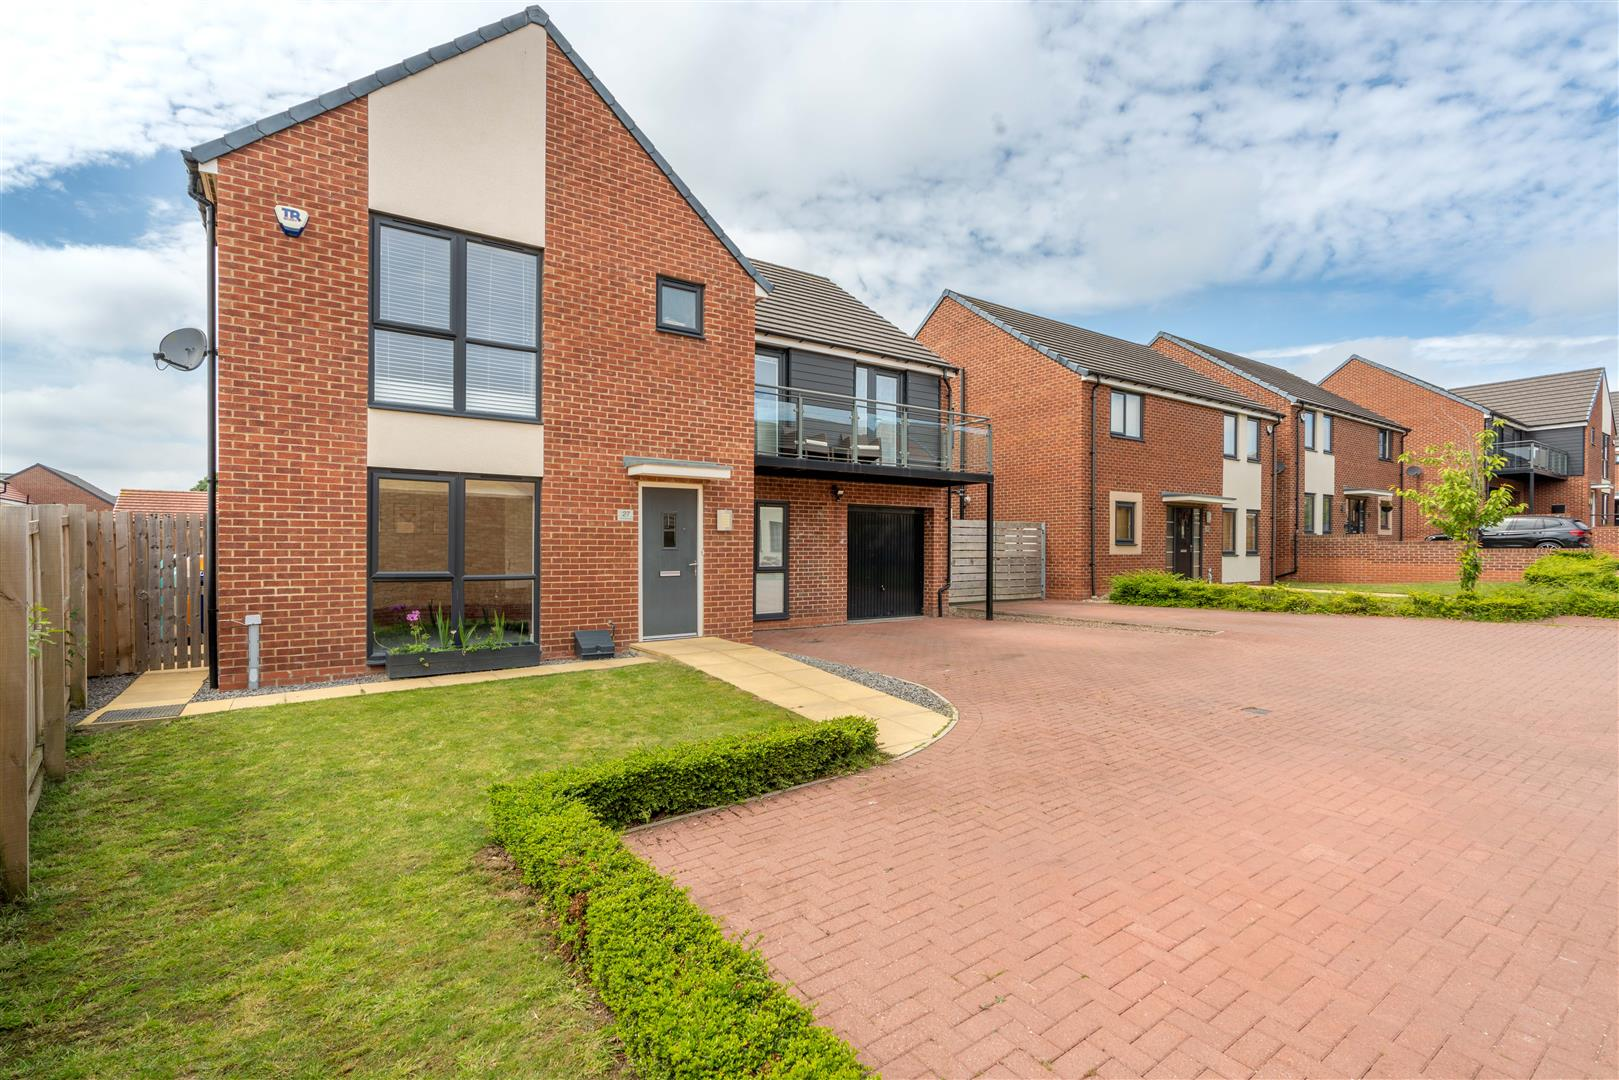 6 bed detached house for sale in Ashwood Close, Newcastle Upon Tyne, NE13